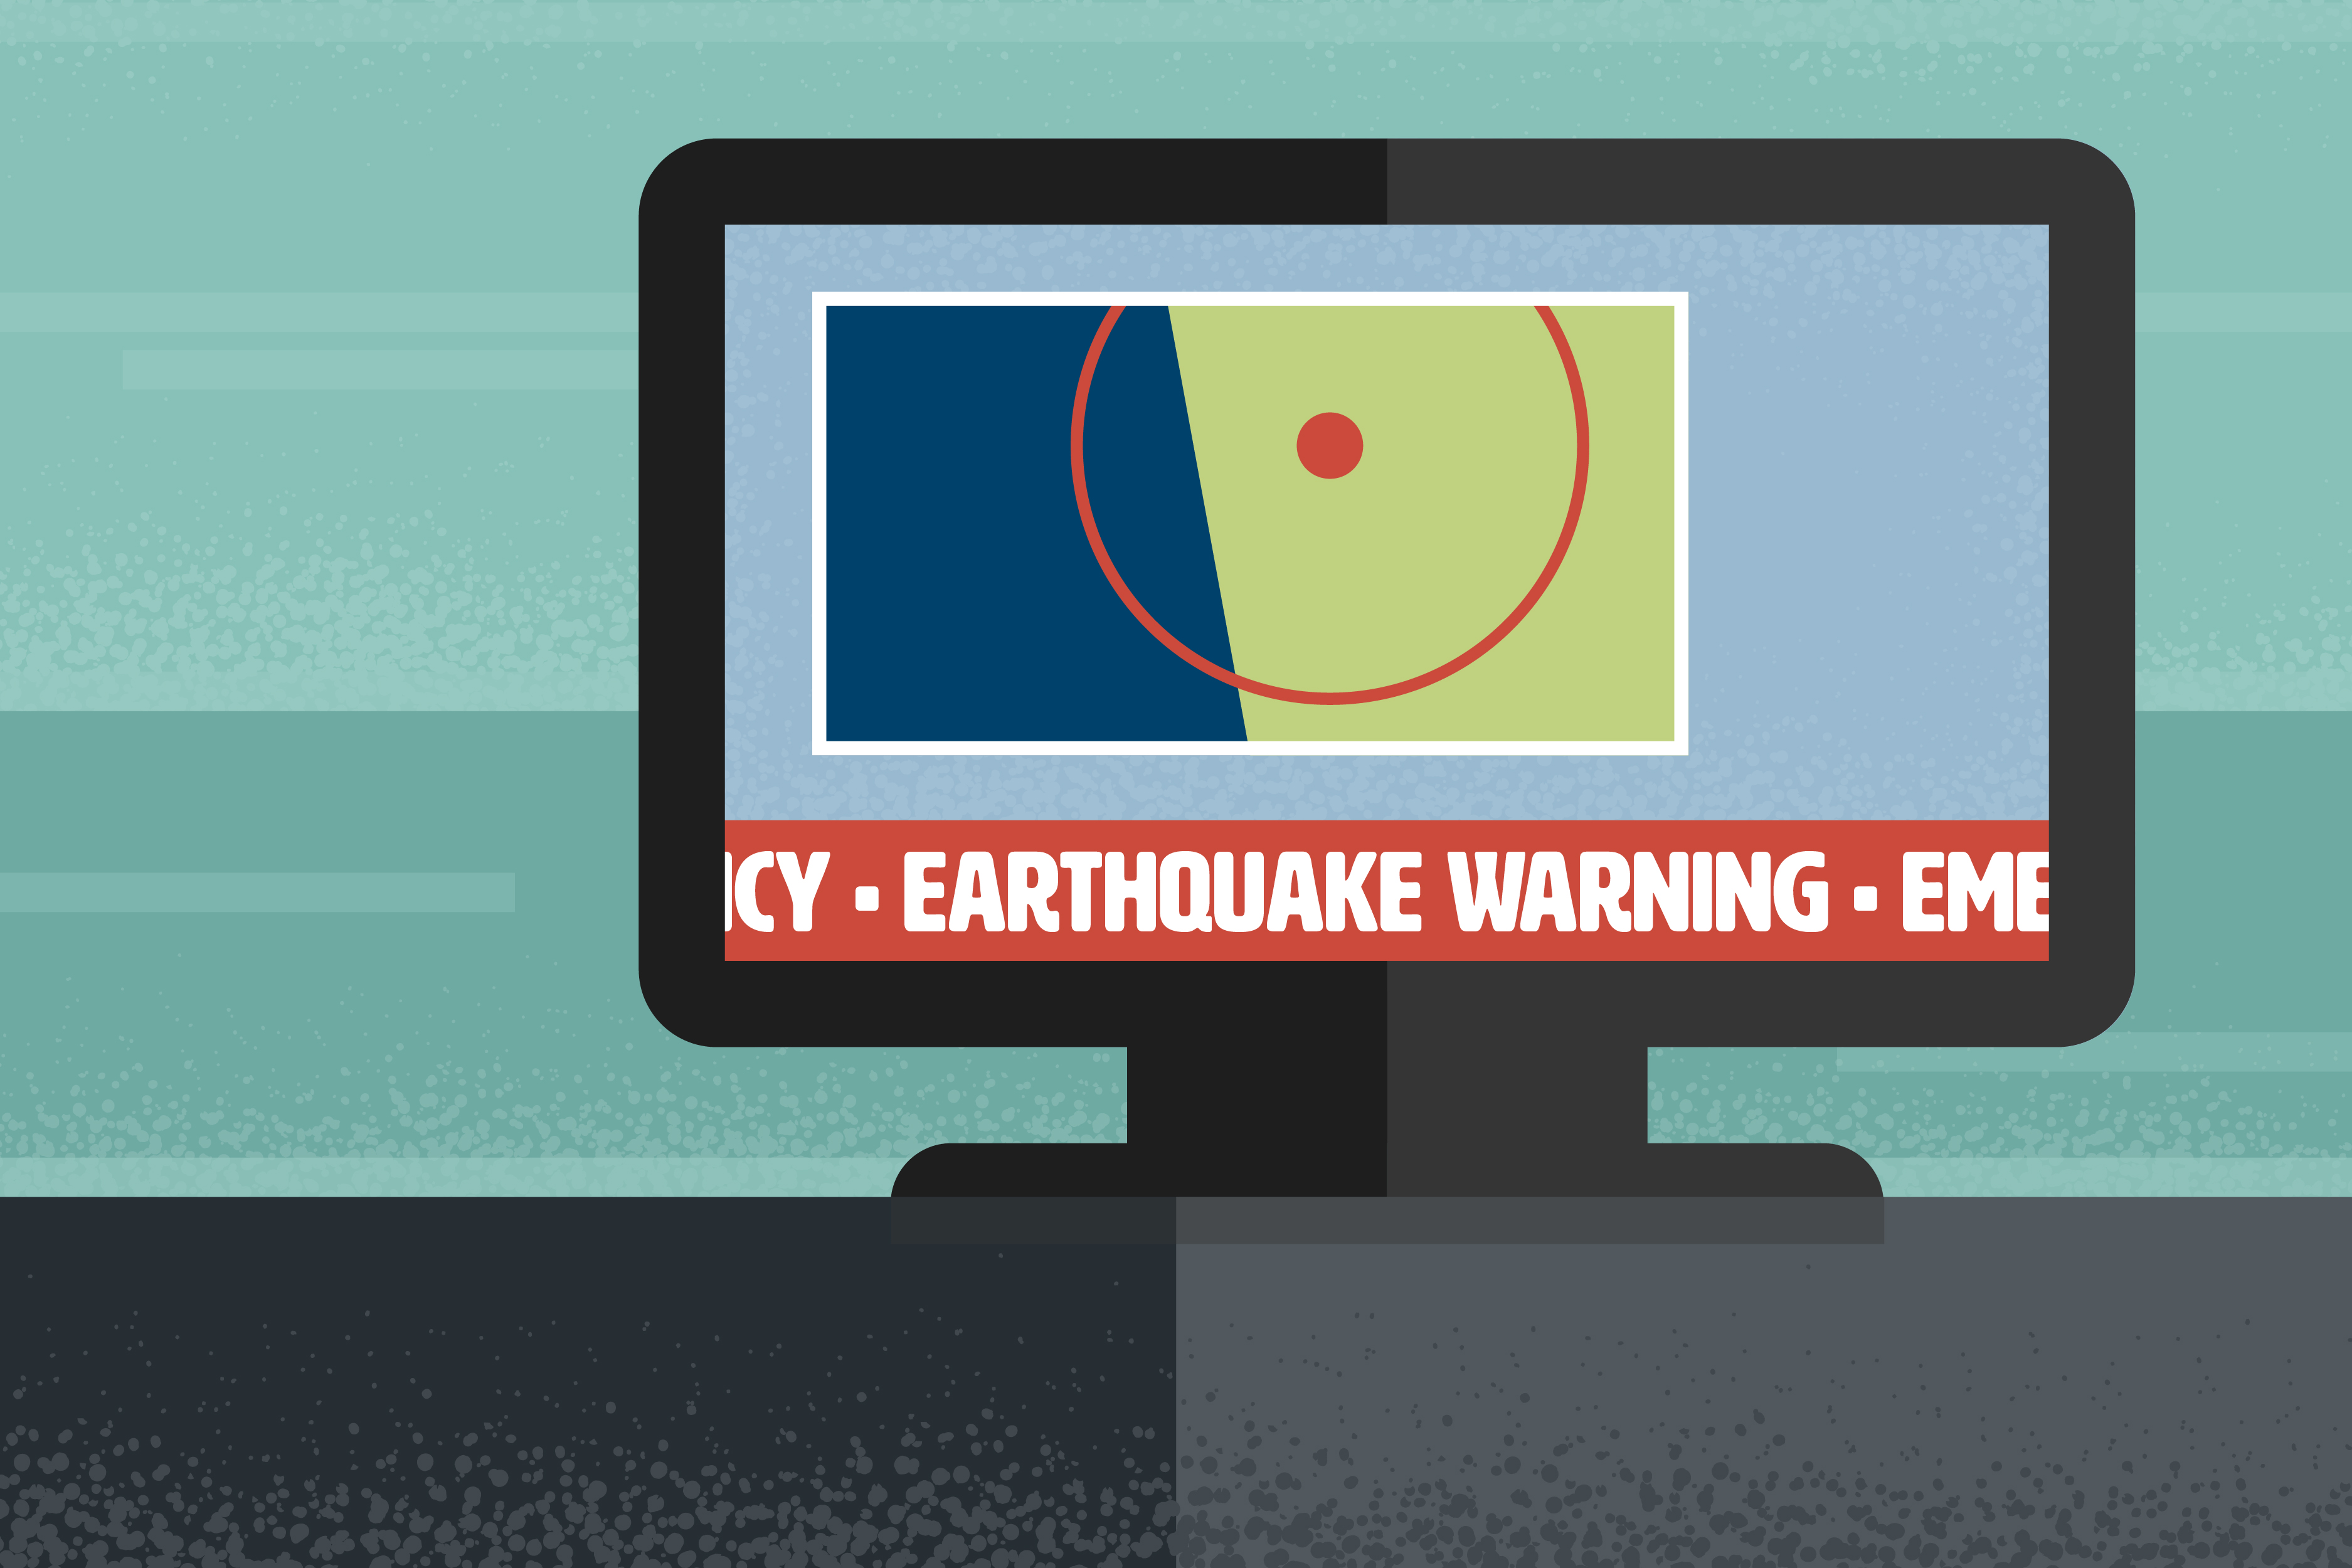 Early earthquake warnings can help protect Californians